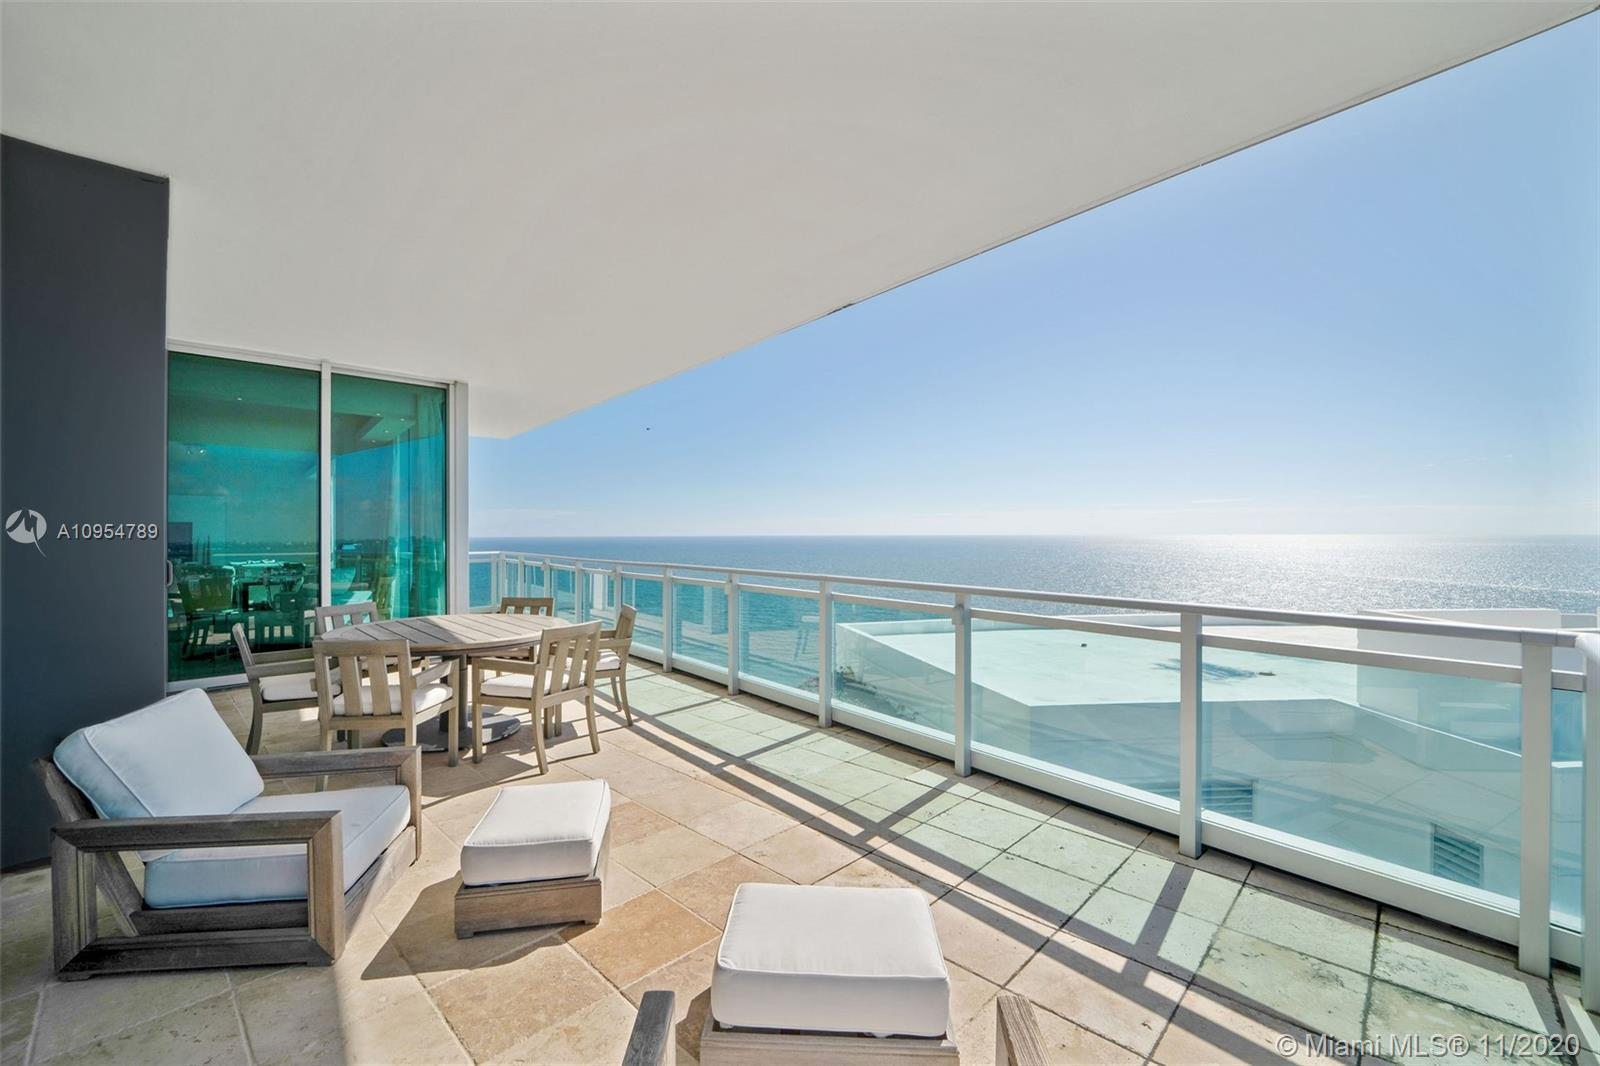 STUNNING RESIDENCE WITH OPEN LIVING & DINING AREA OVERLOOKING PANORAMIC OCEAN VIEWS. LUXURIOUS RITZ